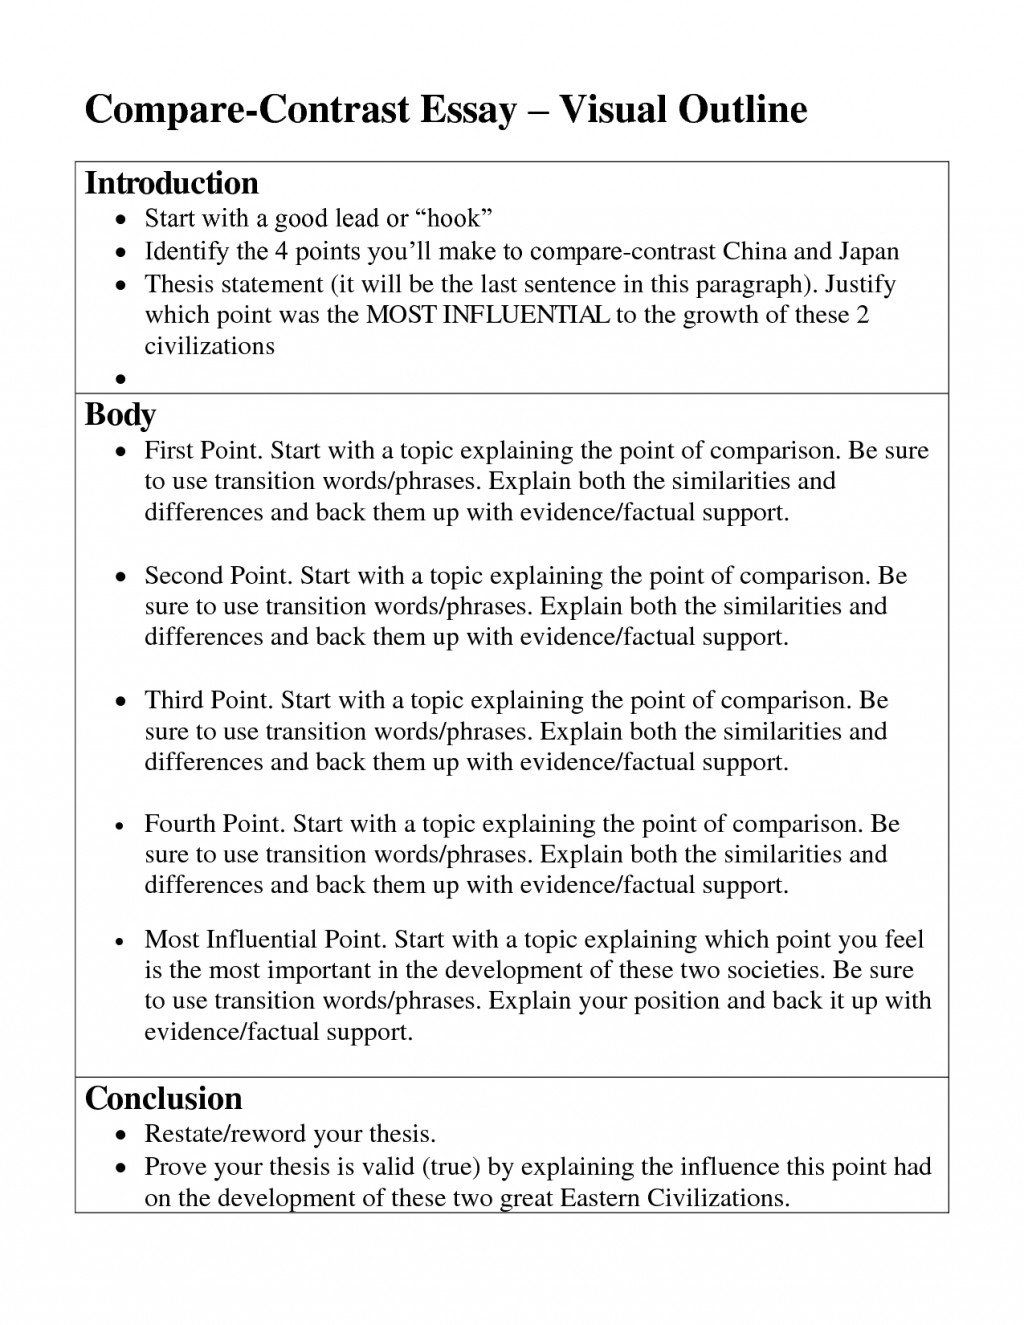 004 How To Write Compare And Contrast Essay Striking Block Method Conclusion Large